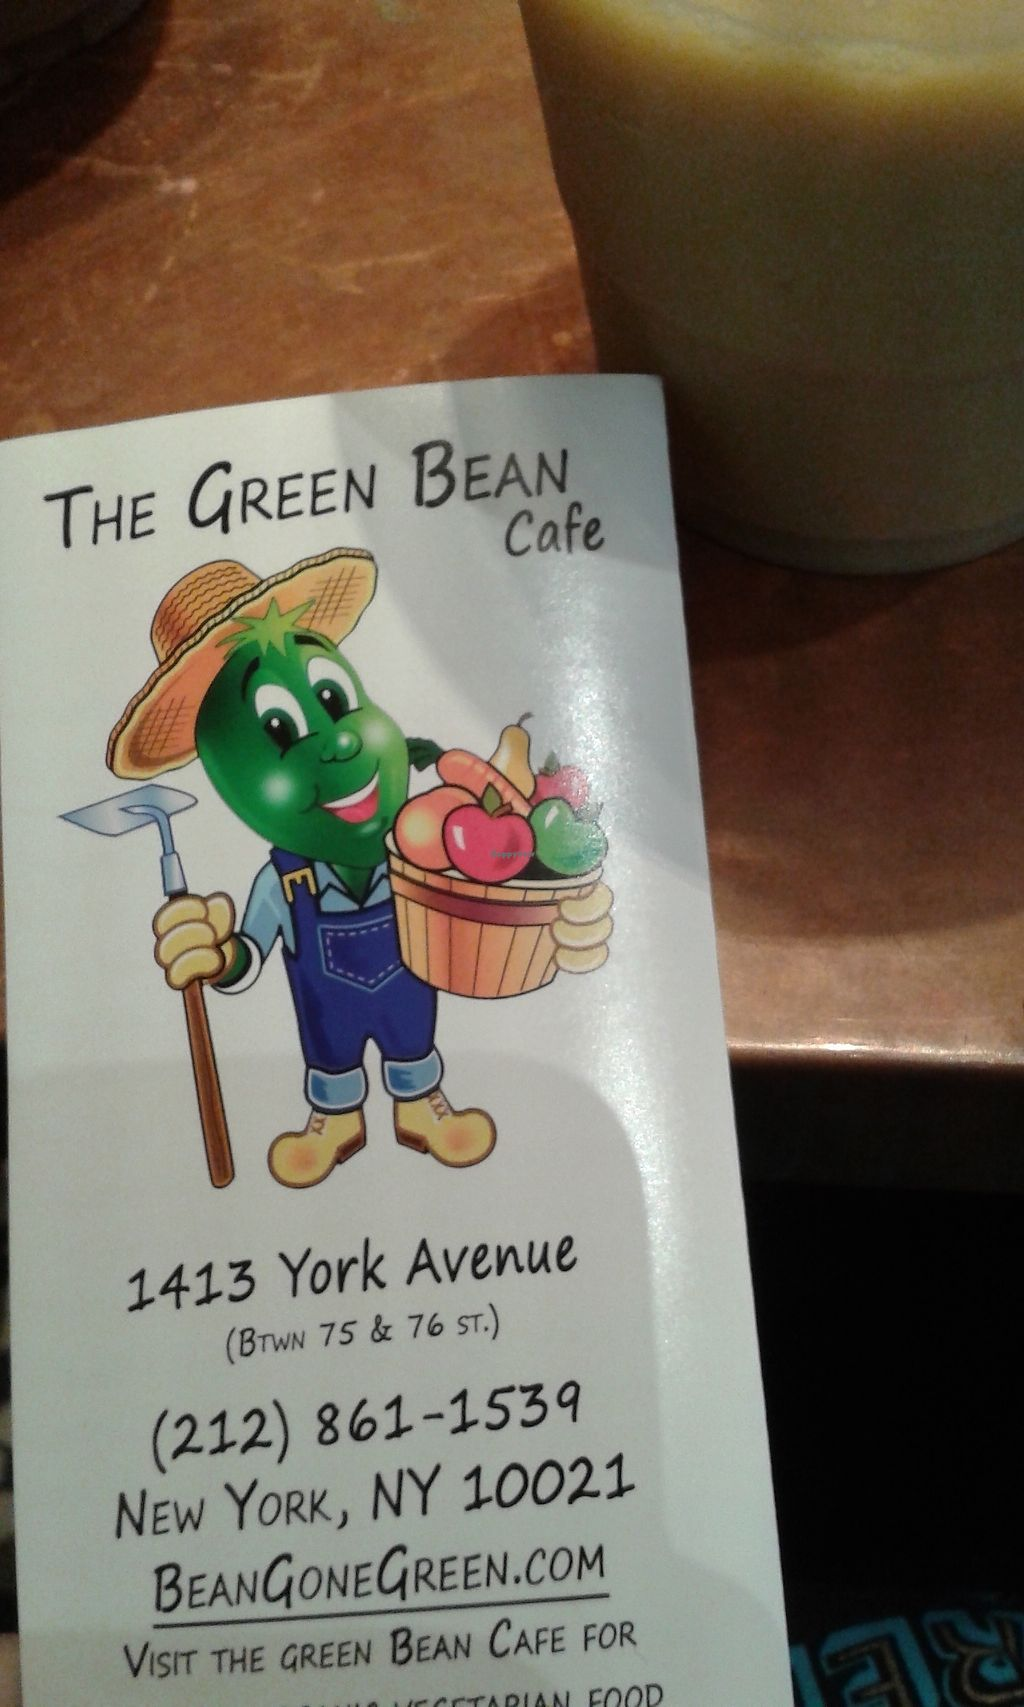 """Photo of The Green Bean Cafe  by <a href=""""/members/profile/Coralin"""">Coralin</a> <br/>Menu <br/> November 9, 2017  - <a href='/contact/abuse/image/16543/323600'>Report</a>"""